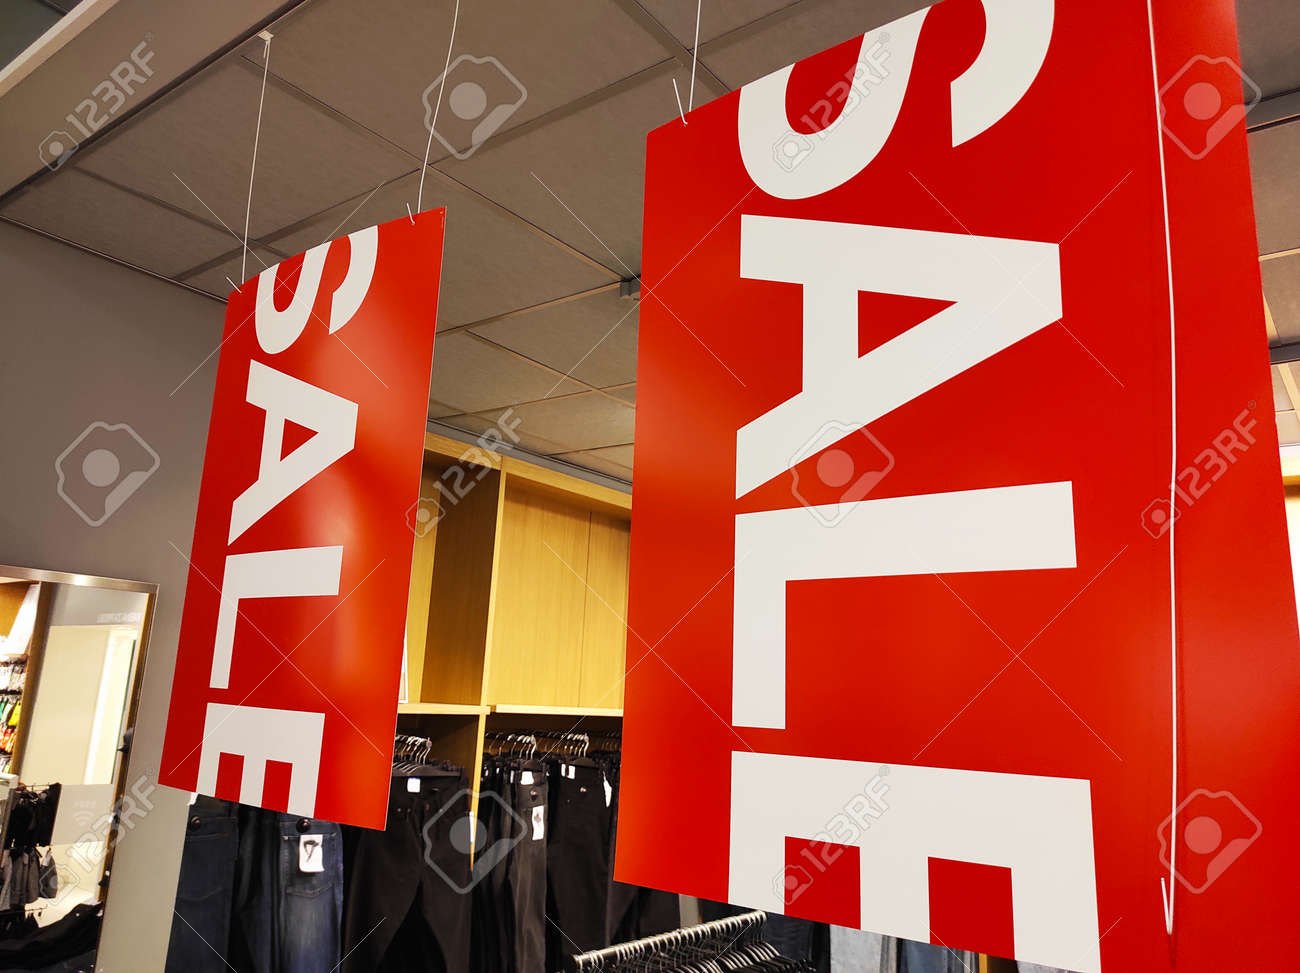 Sale signs in a clothing store. - 155803853